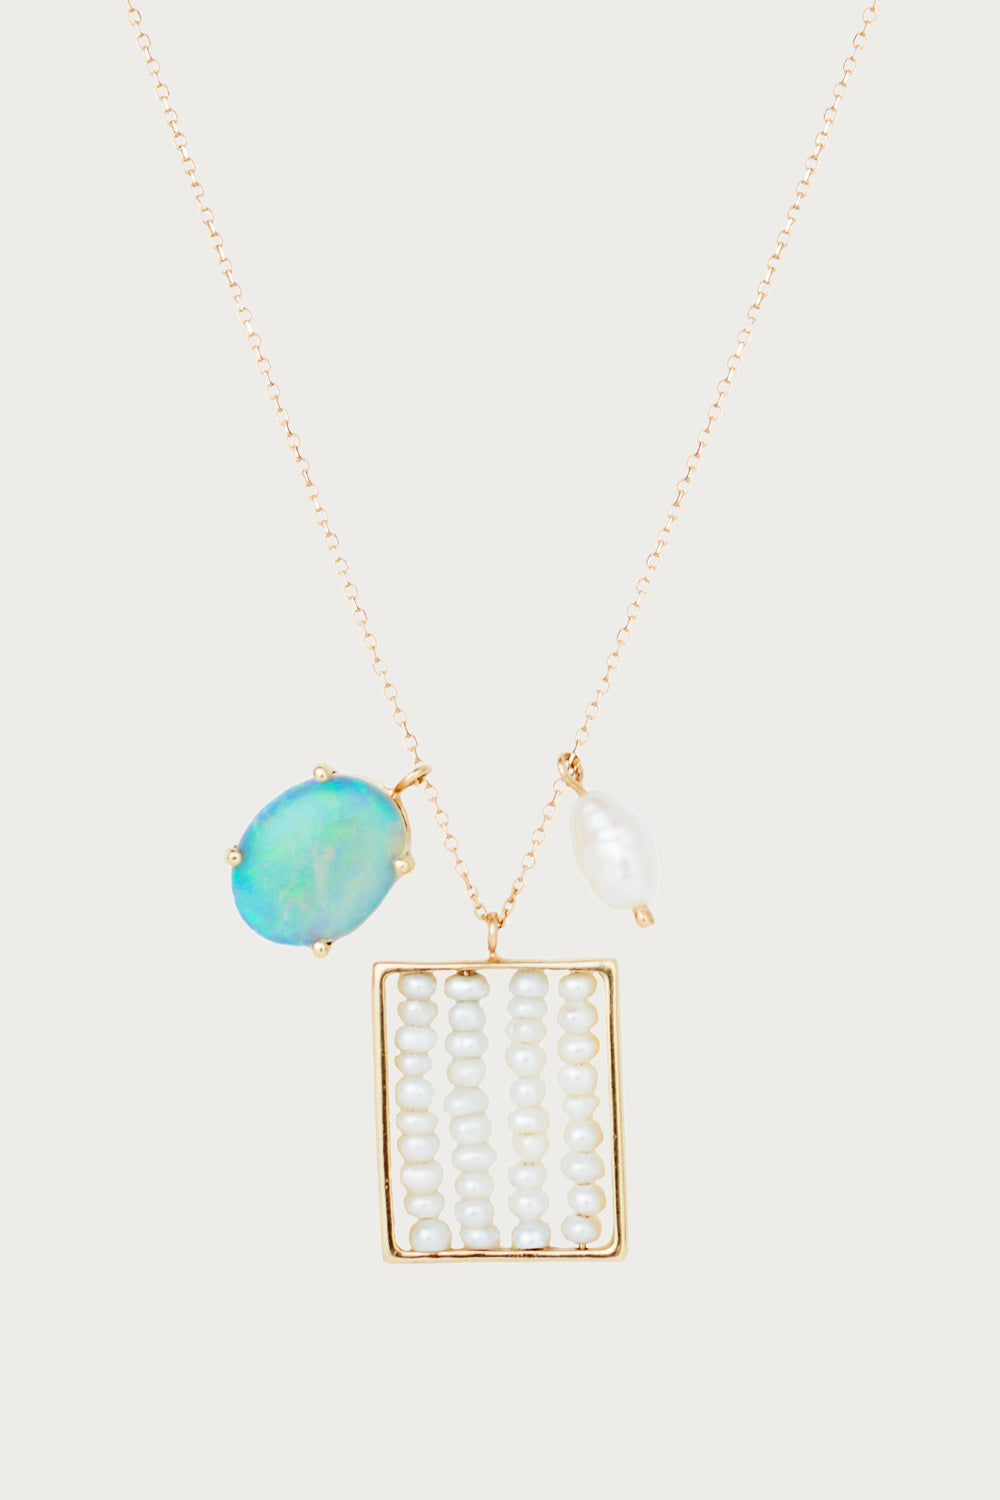 Pearl and Opal Charm Necklace